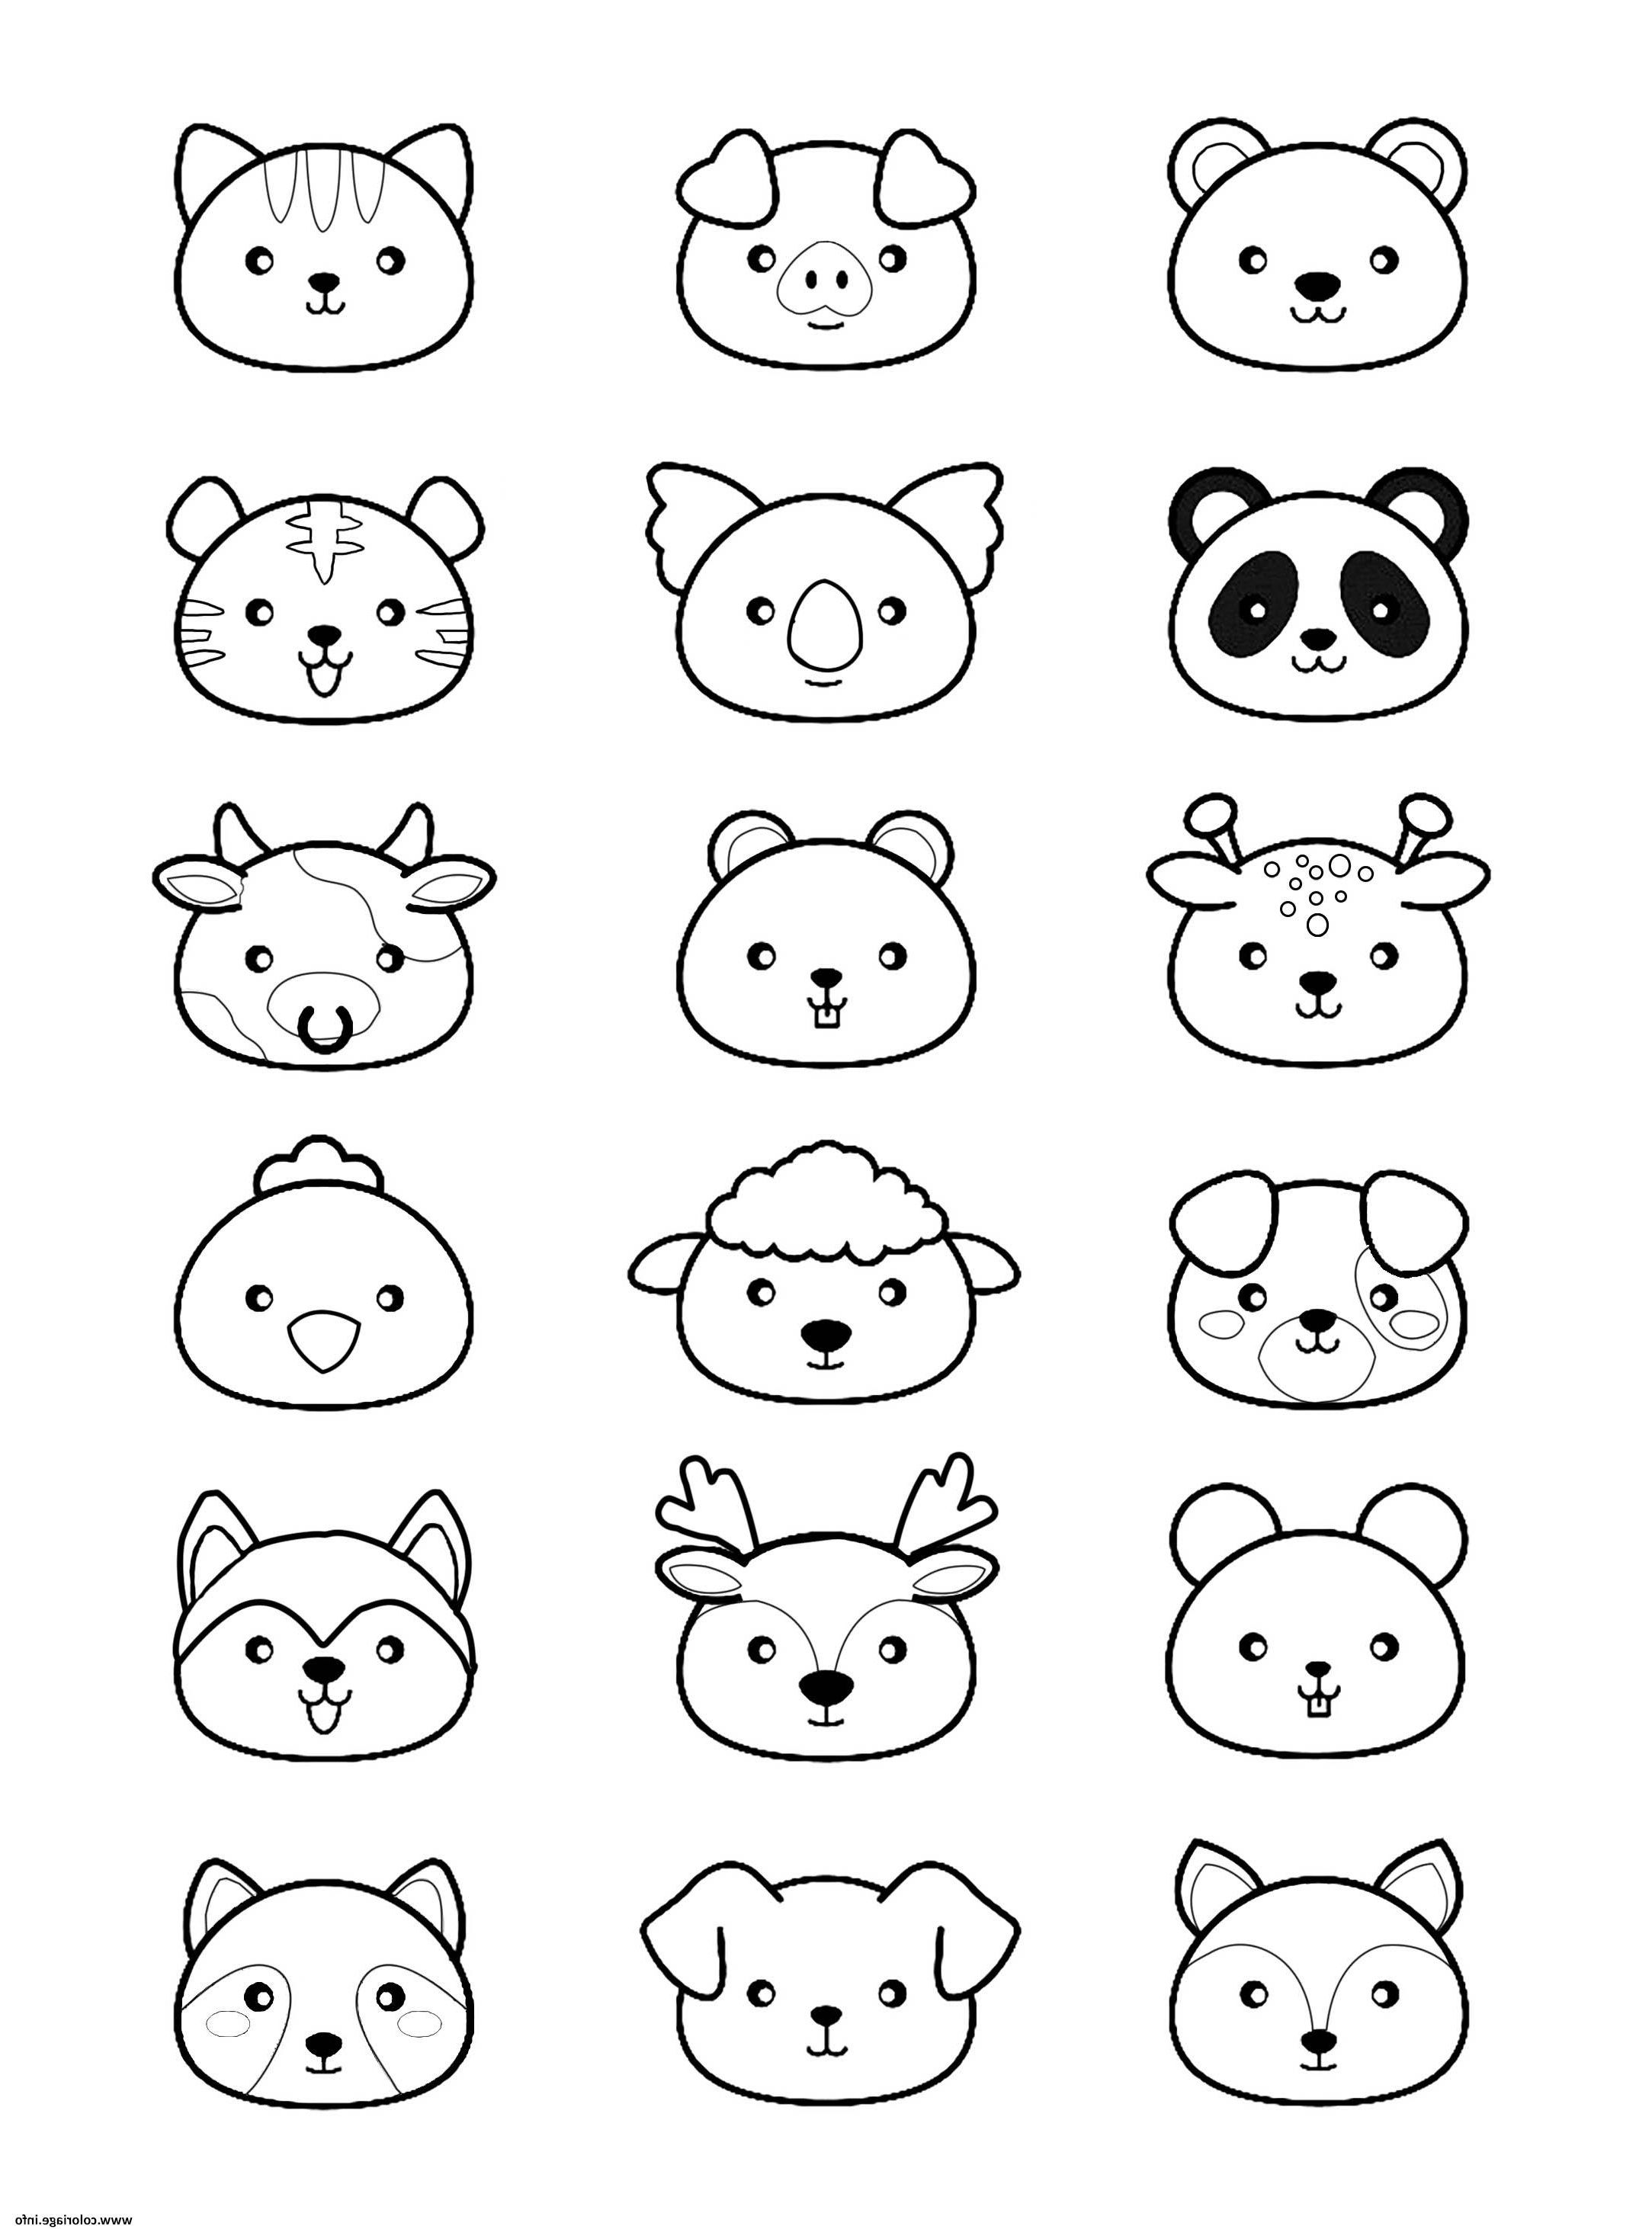 Kawaii Animaux Coloriage Dessin Dessinkawaii In 2020 Panda